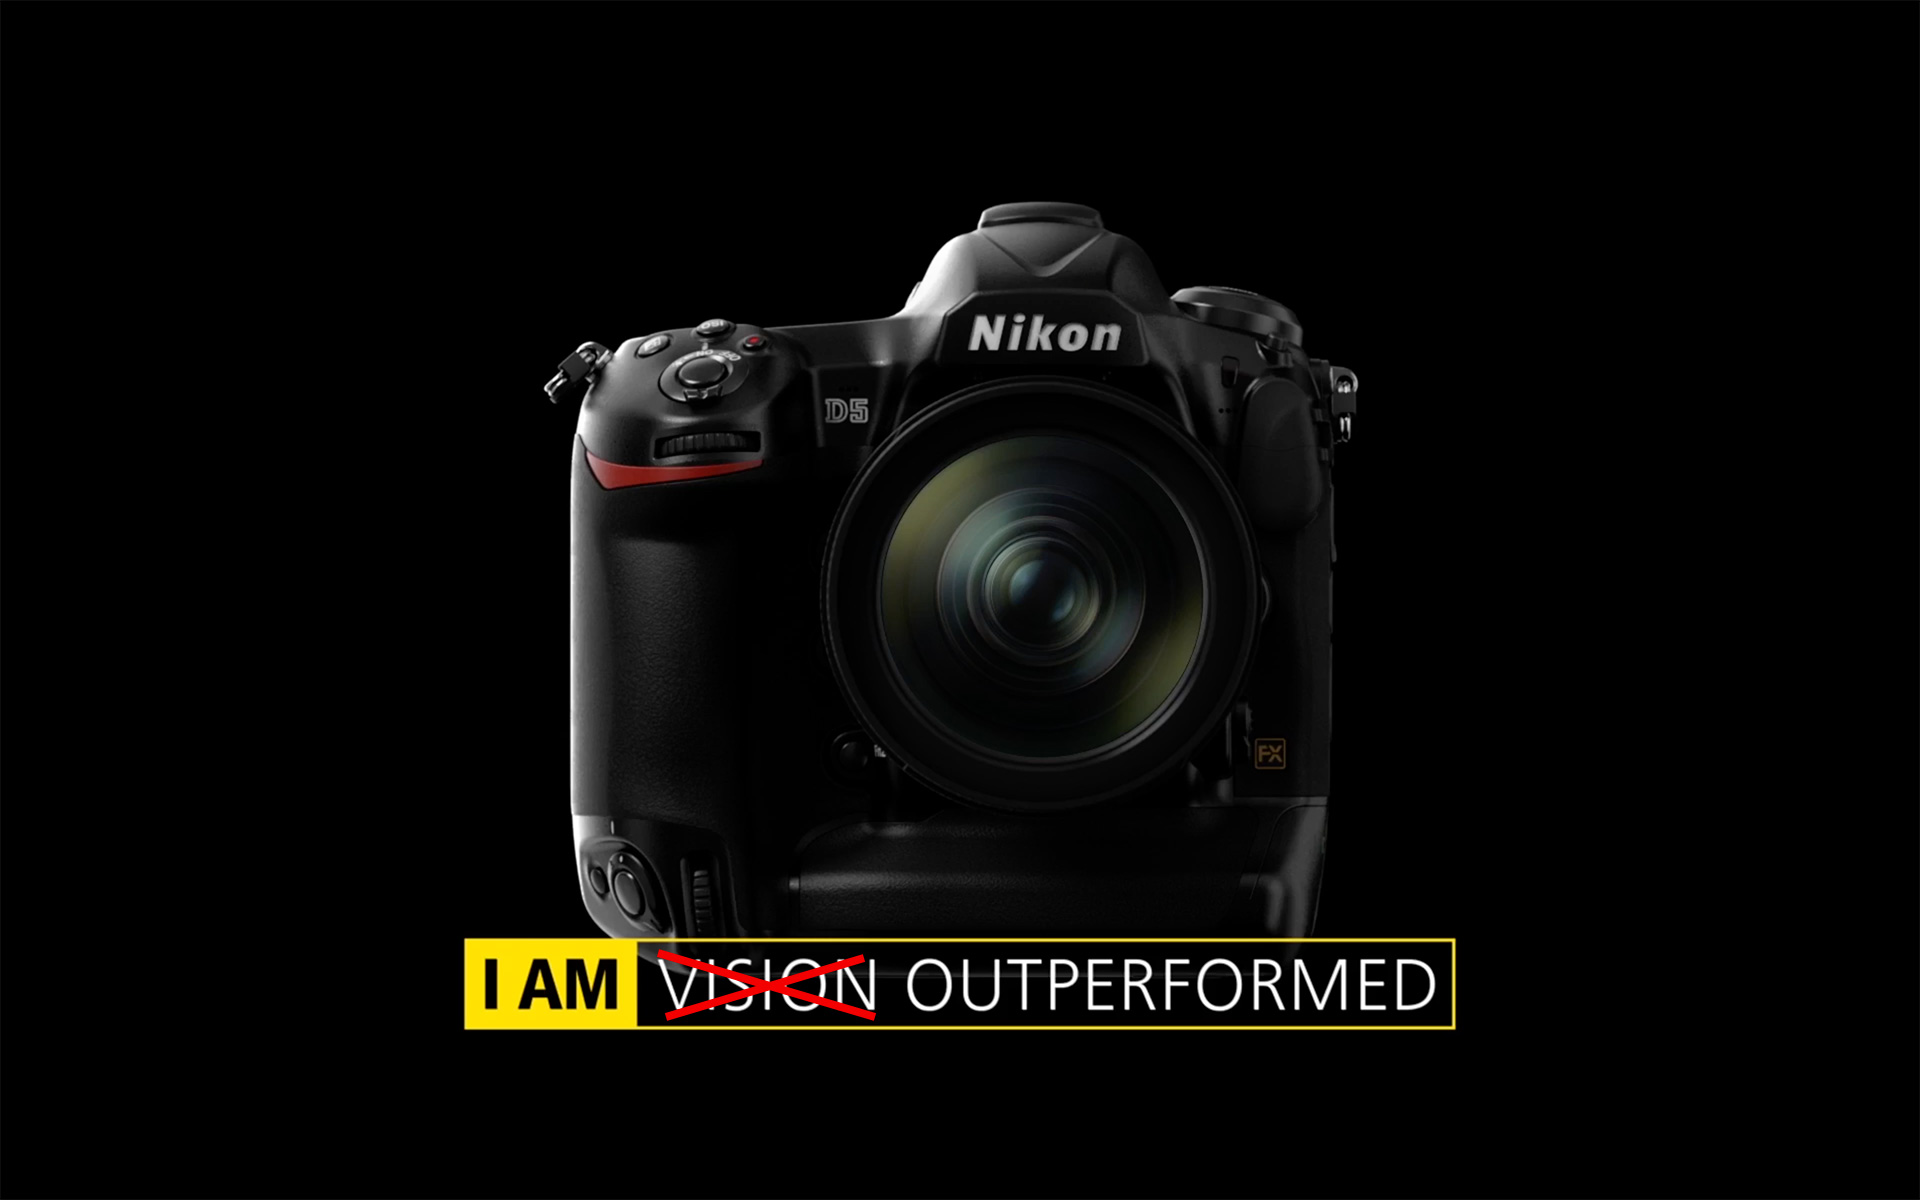 nikon-d5-outperformed.jpg